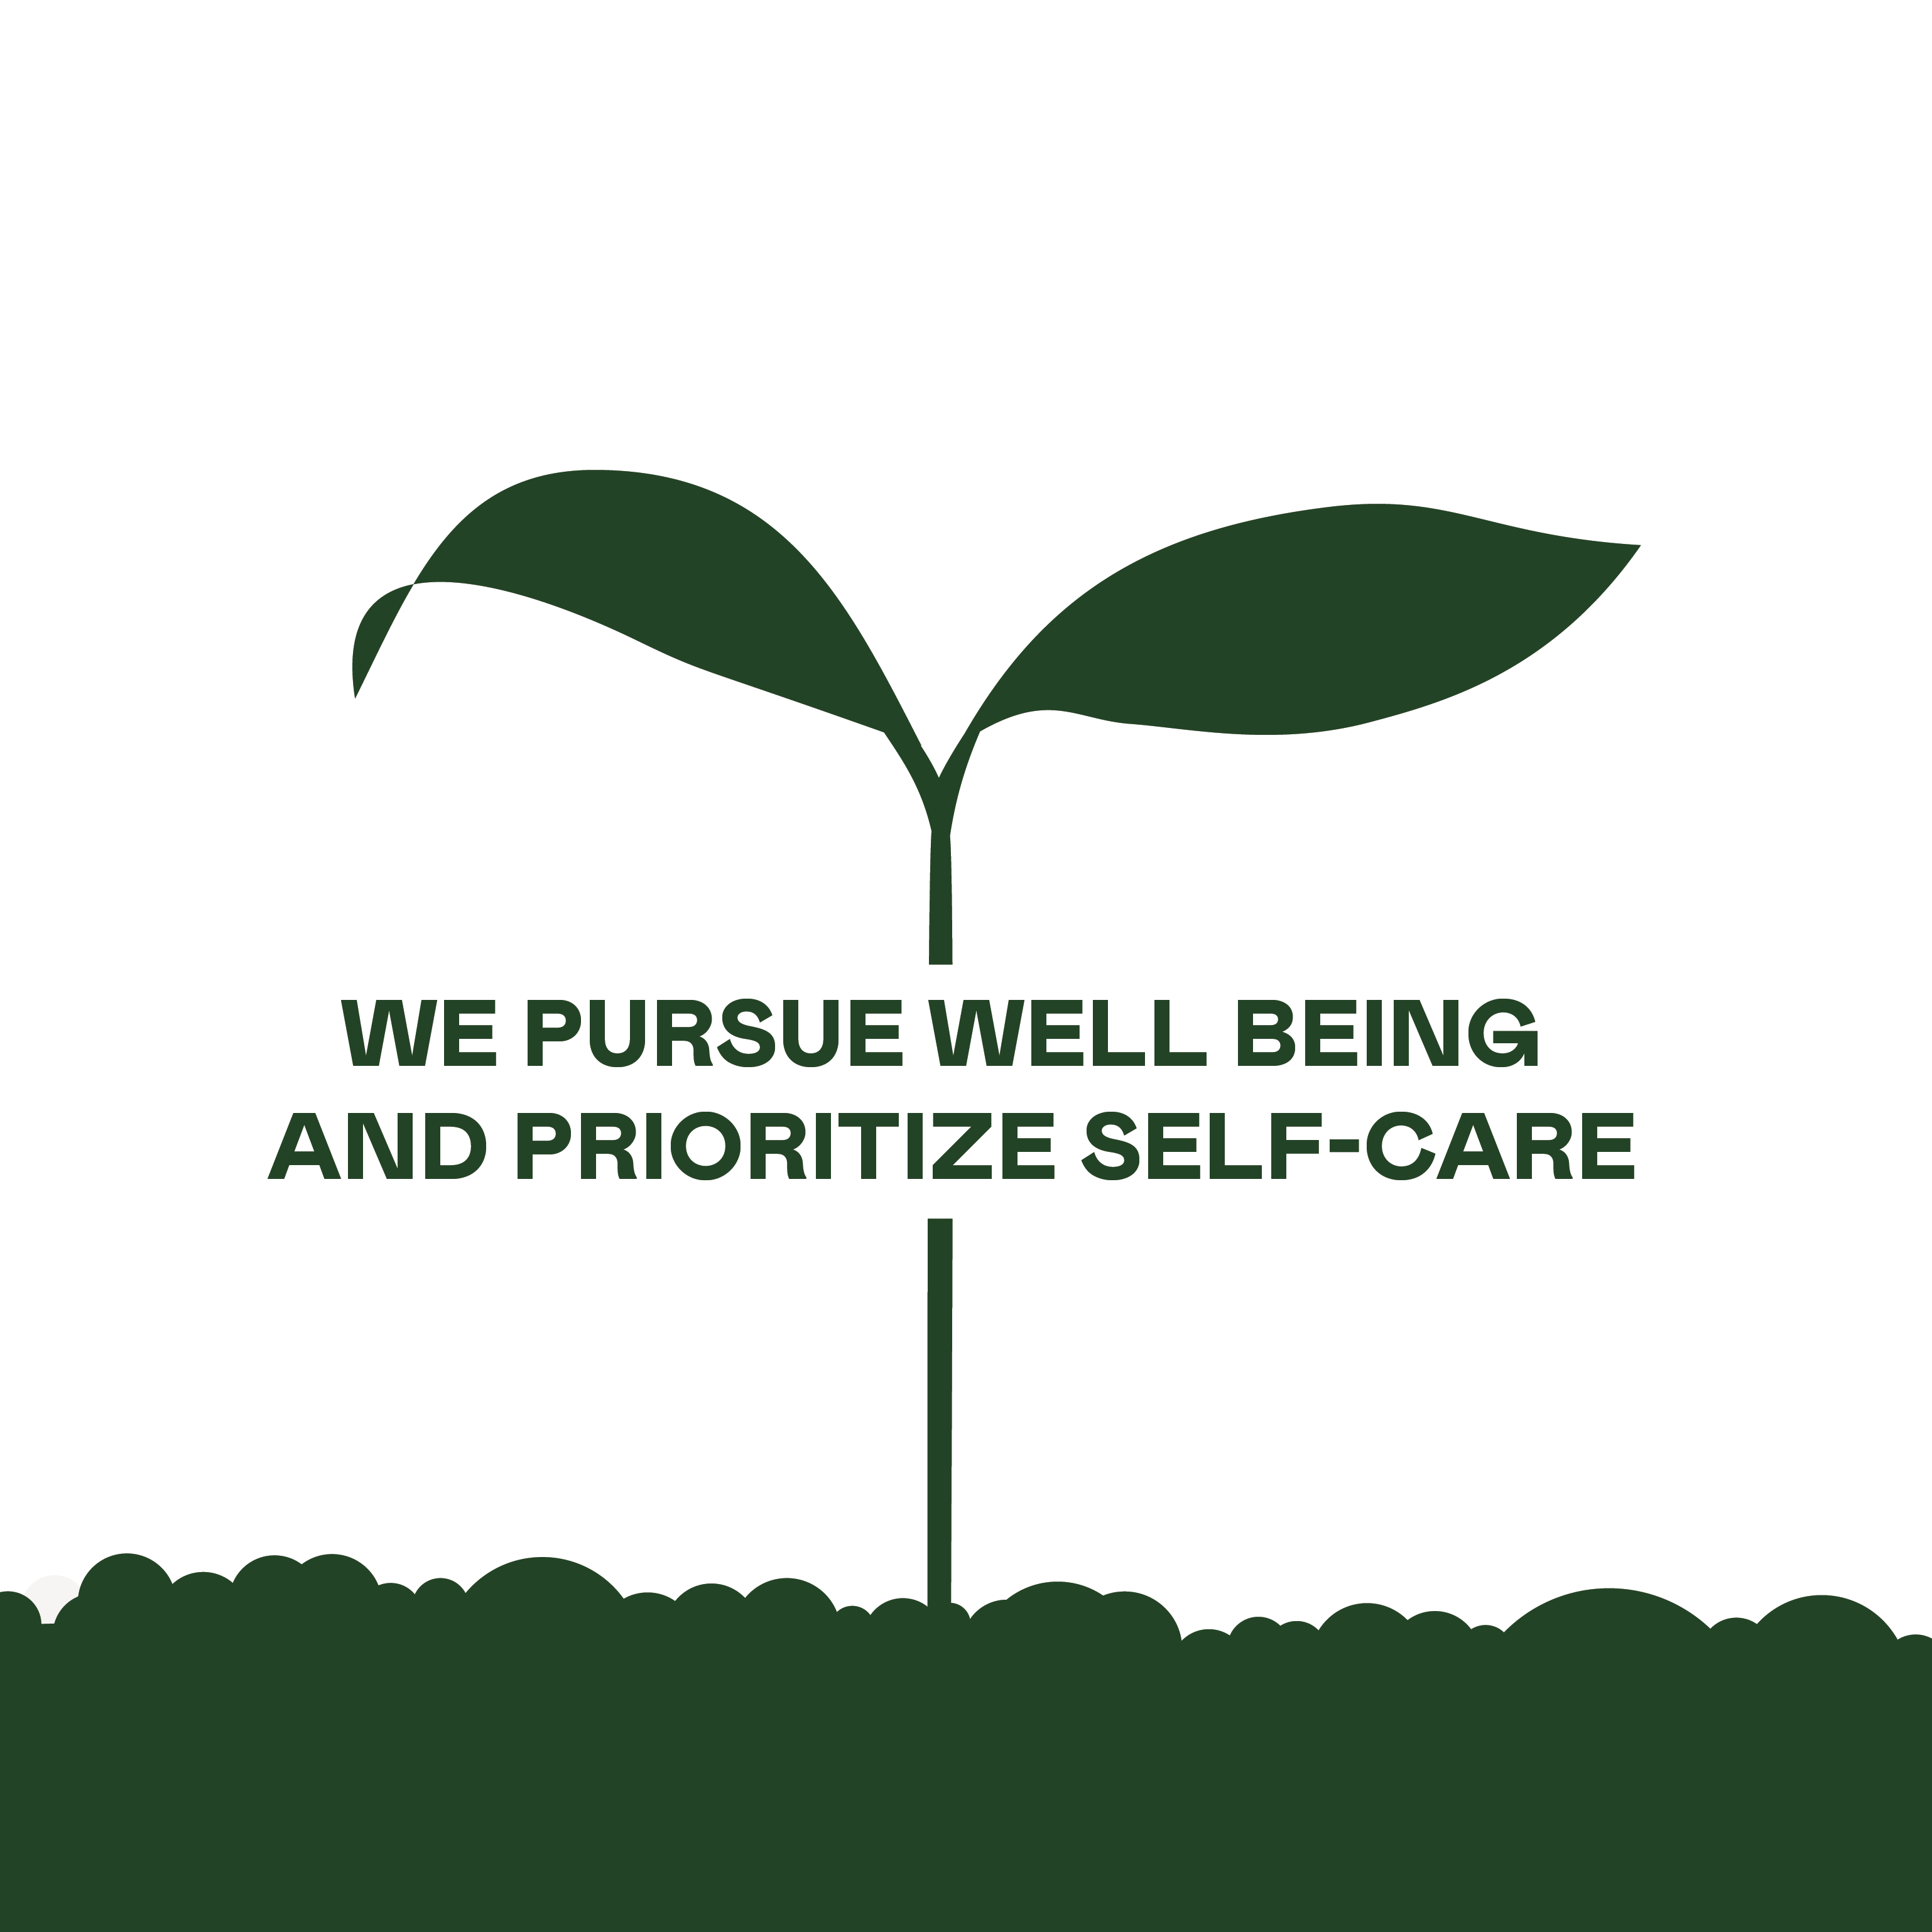 Wellbeing and Self-Care